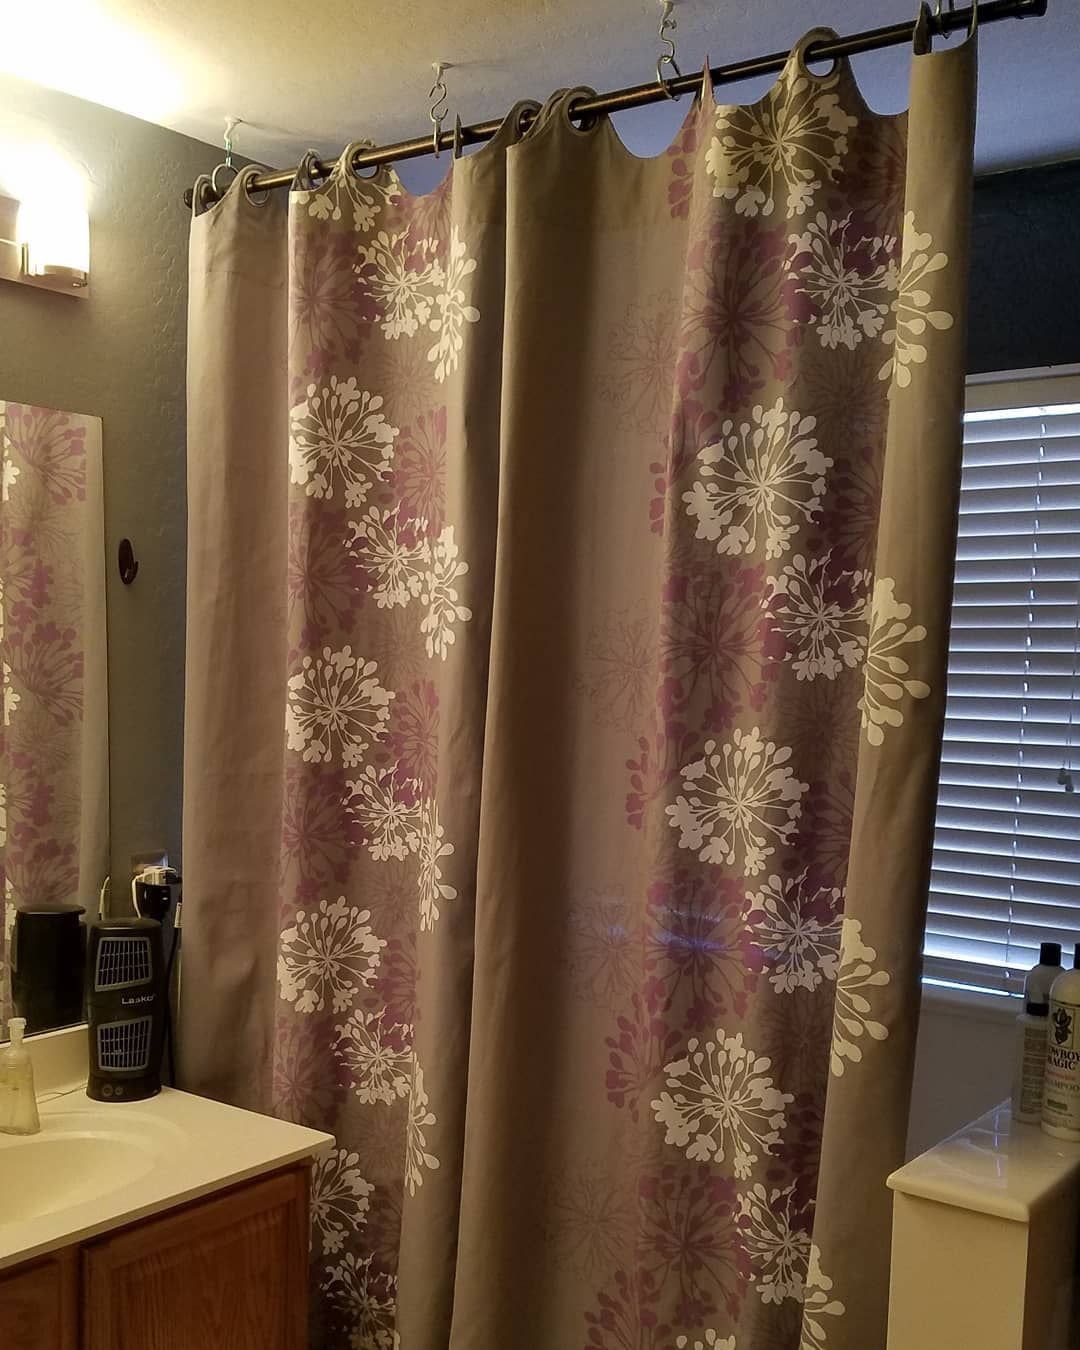 I love our new privacy bathing curtains my next project is to have